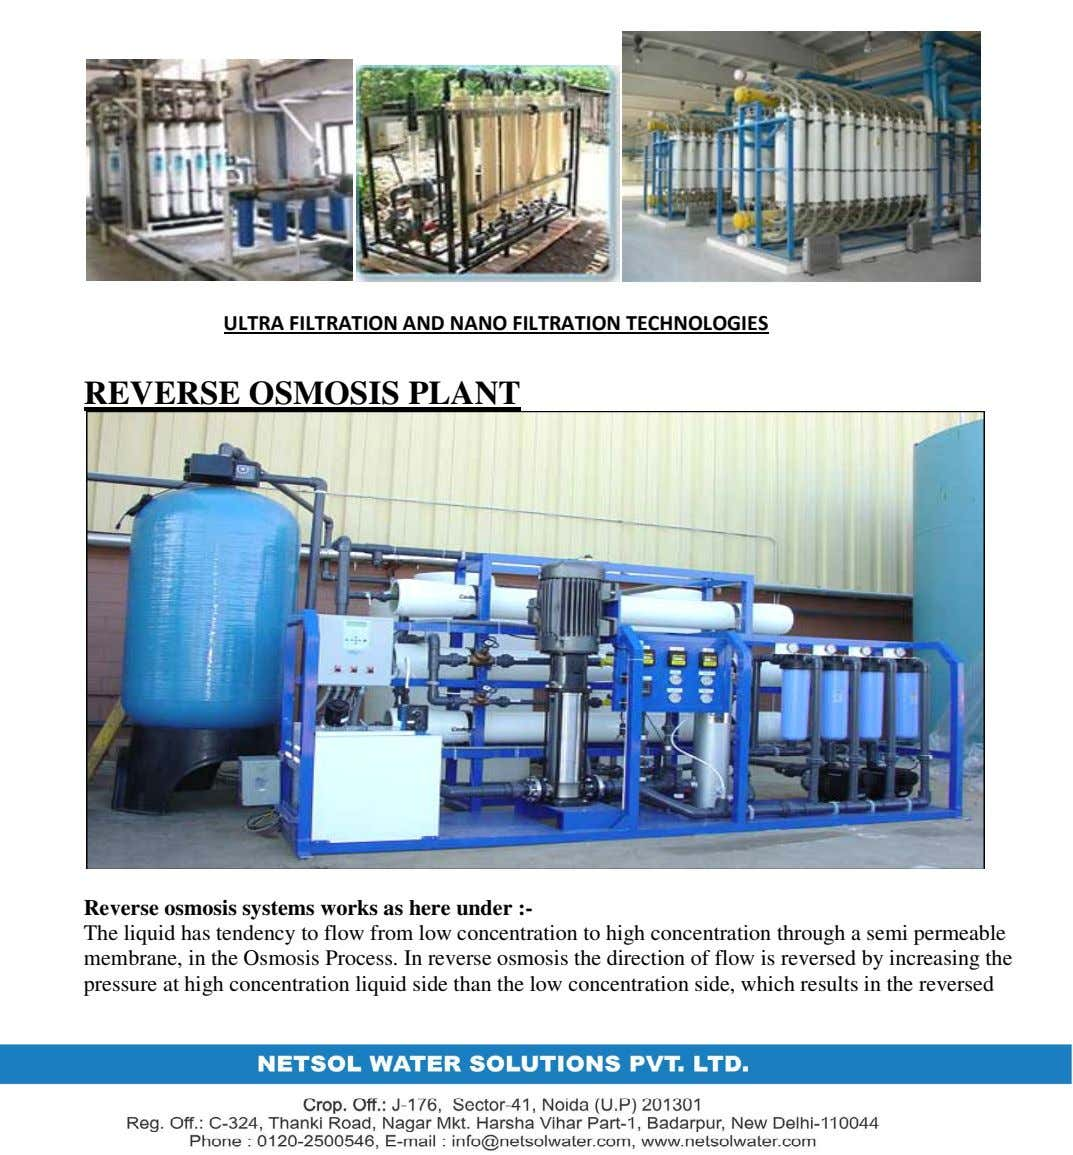 ULTRA FILTRATION AND NANO FILTRATION TECHNOLOGIES REVERSE OSMOSIS PLANT Reverse osmosis systems works as here